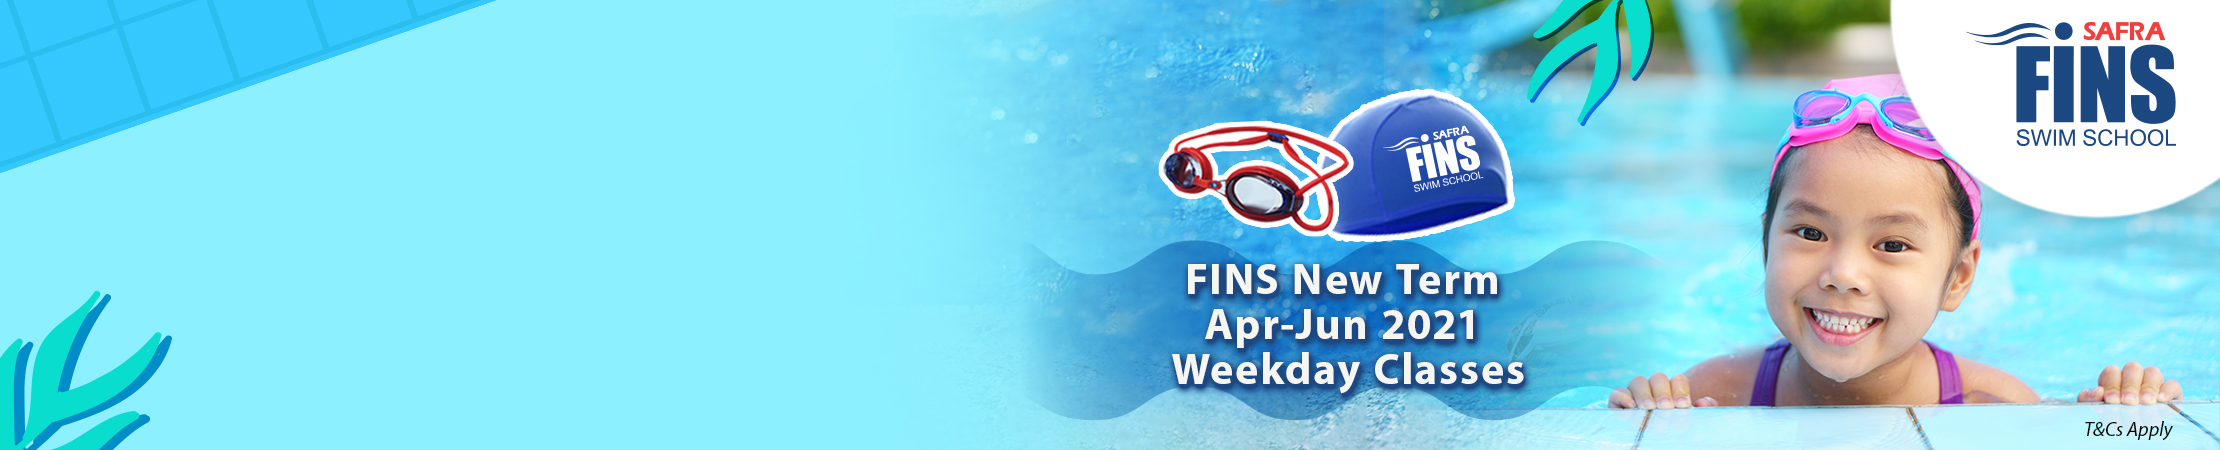 FINS NEW TERM APR-JUN 21